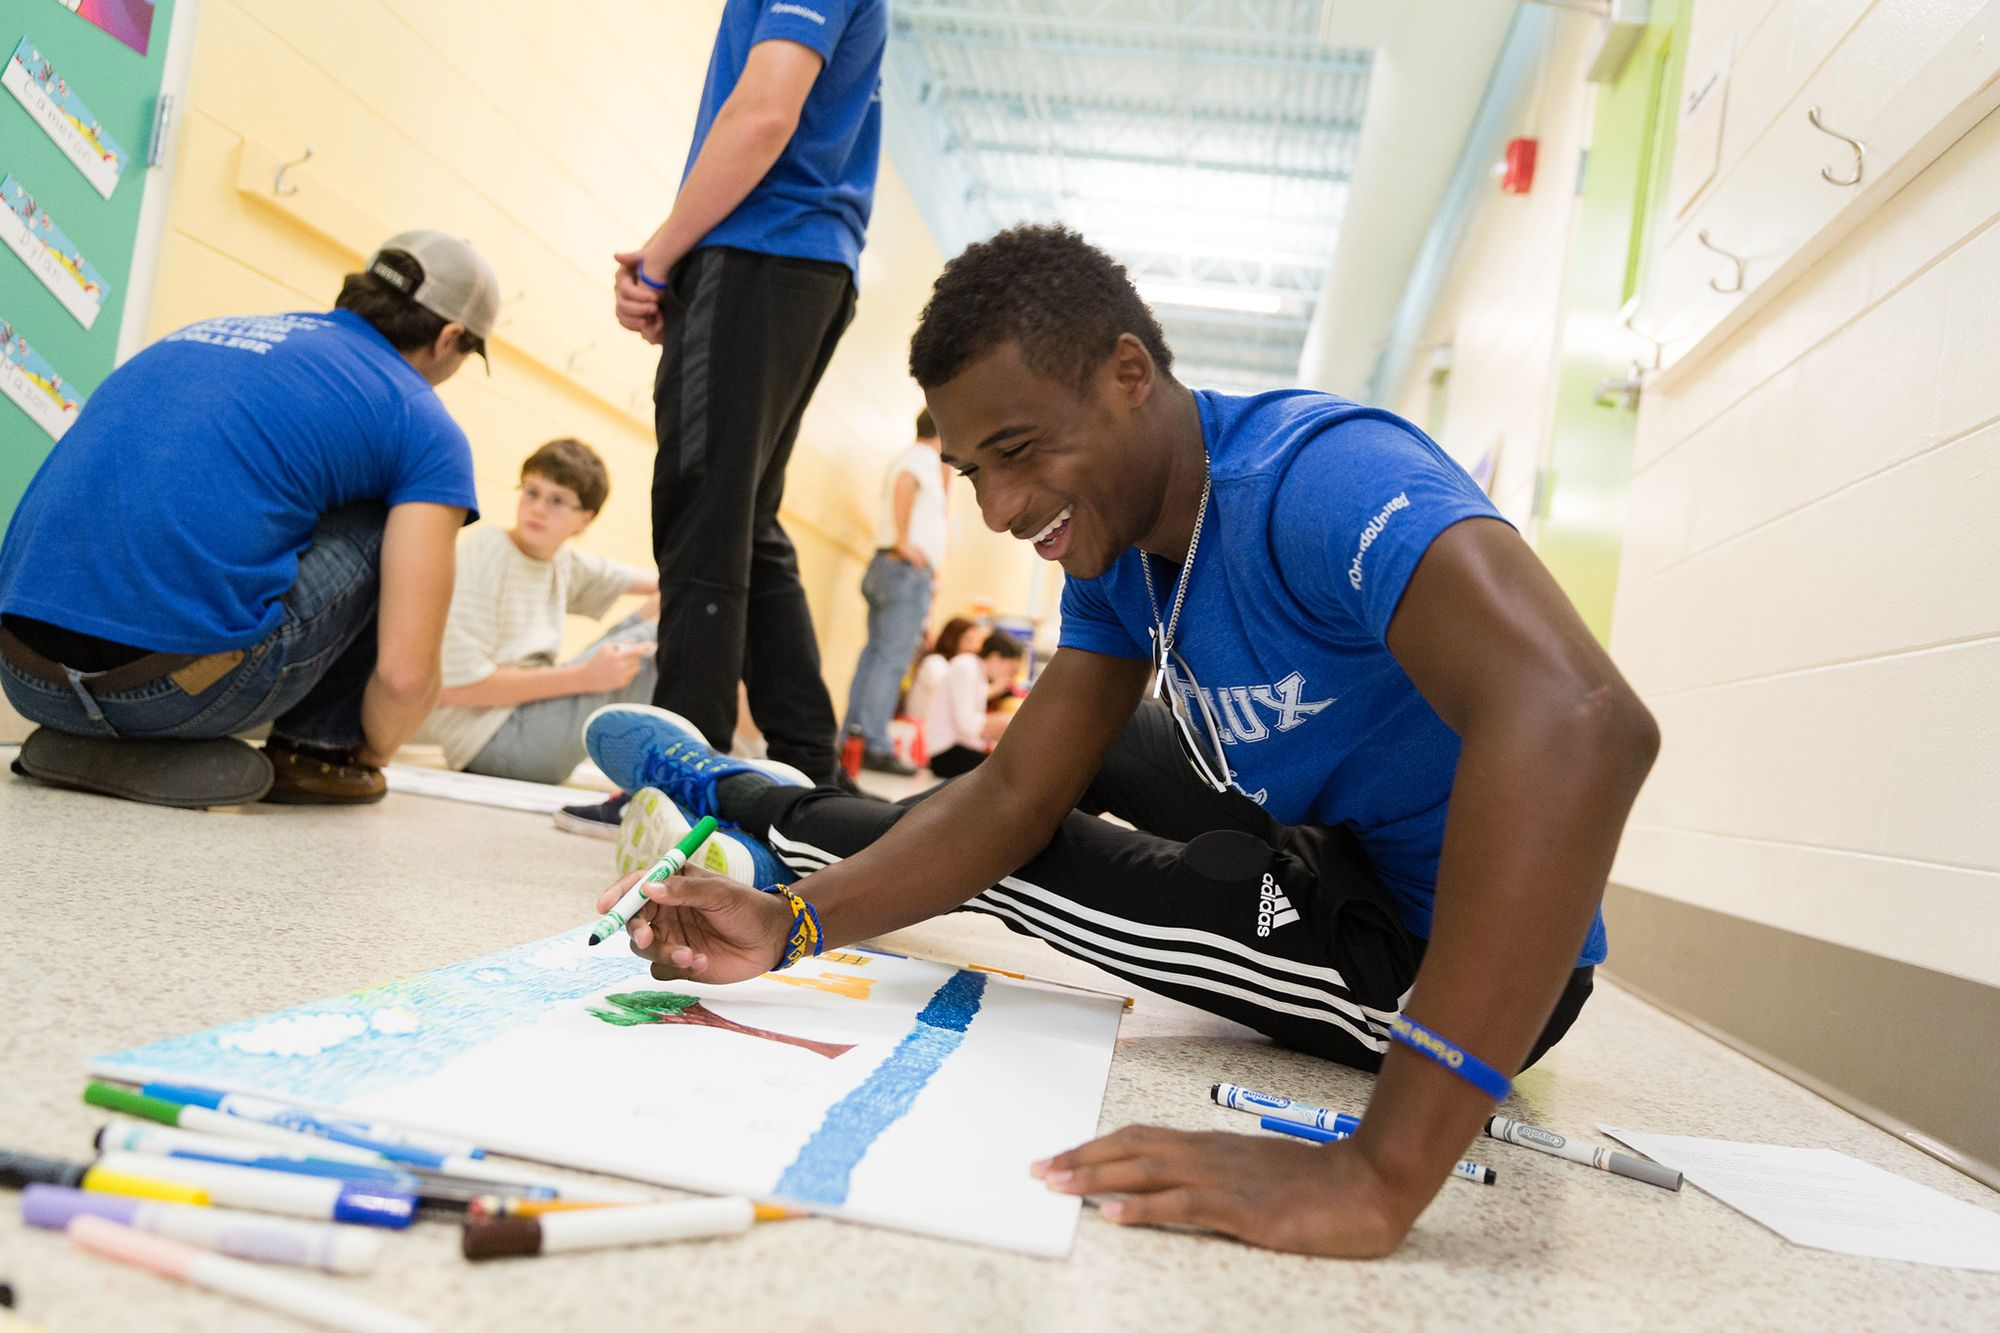 An African-American college student decorating a banner on the floor of a local Orlando elementary school.